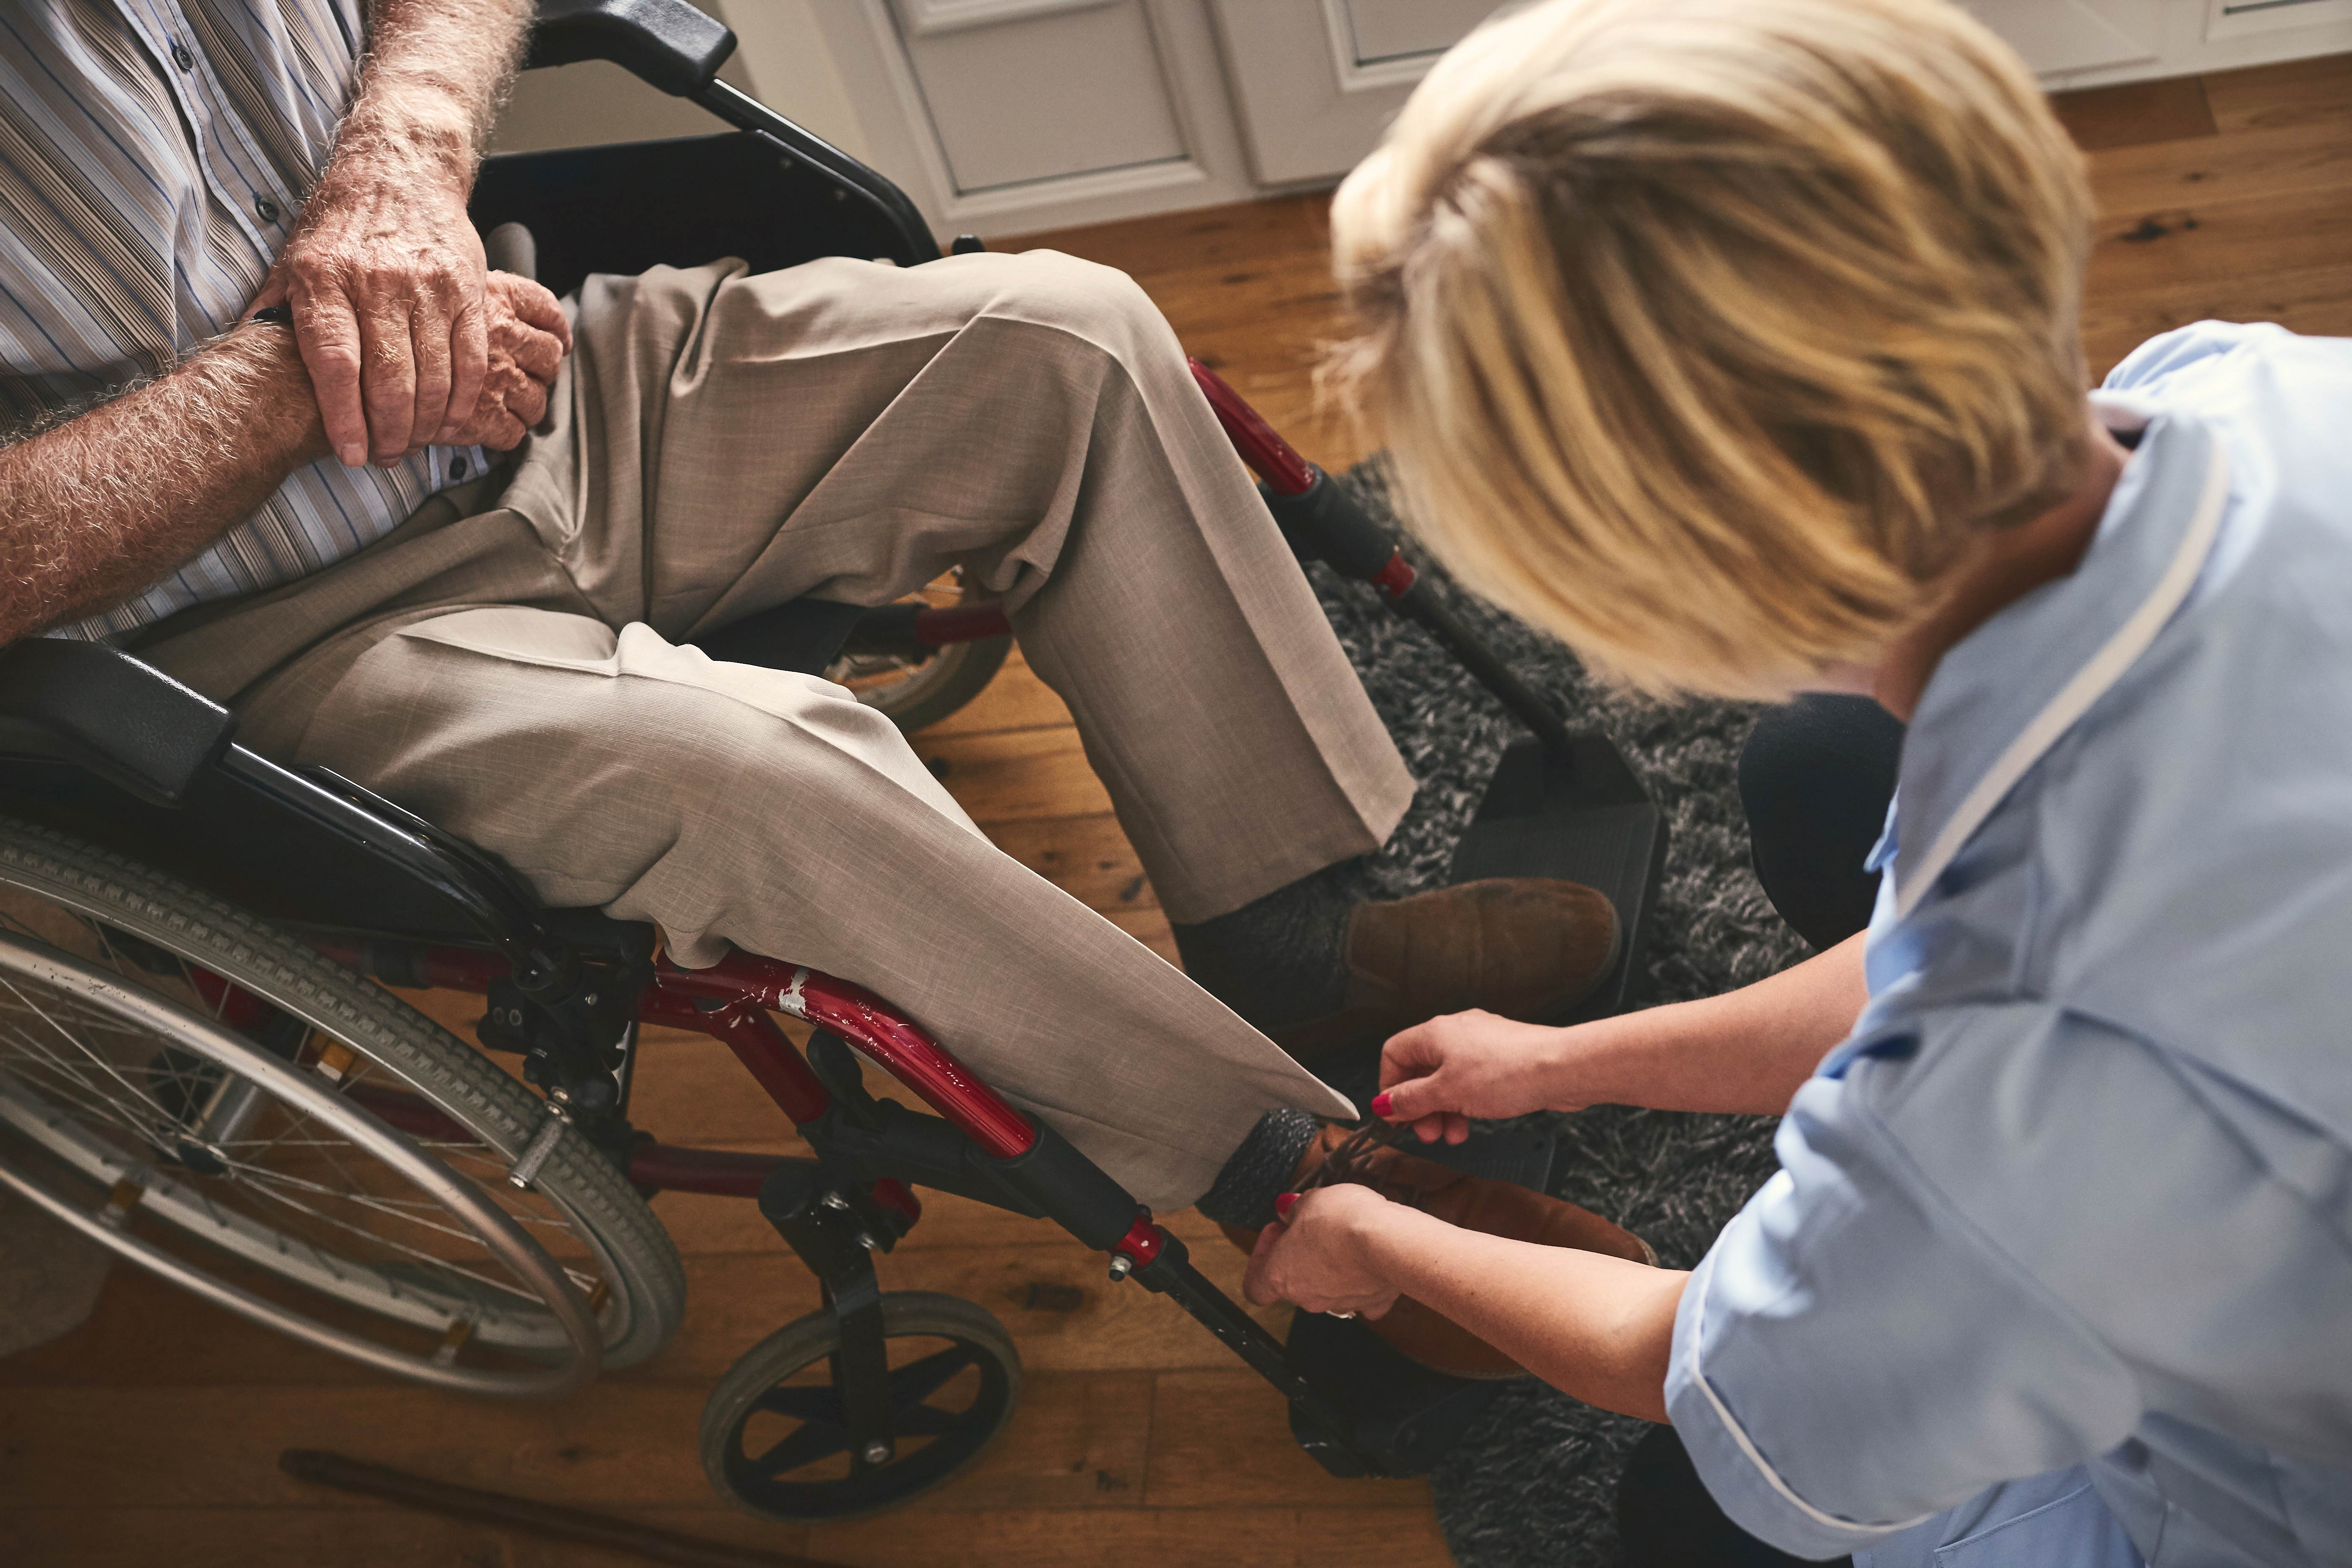 caregiver putting on adaptive footwear